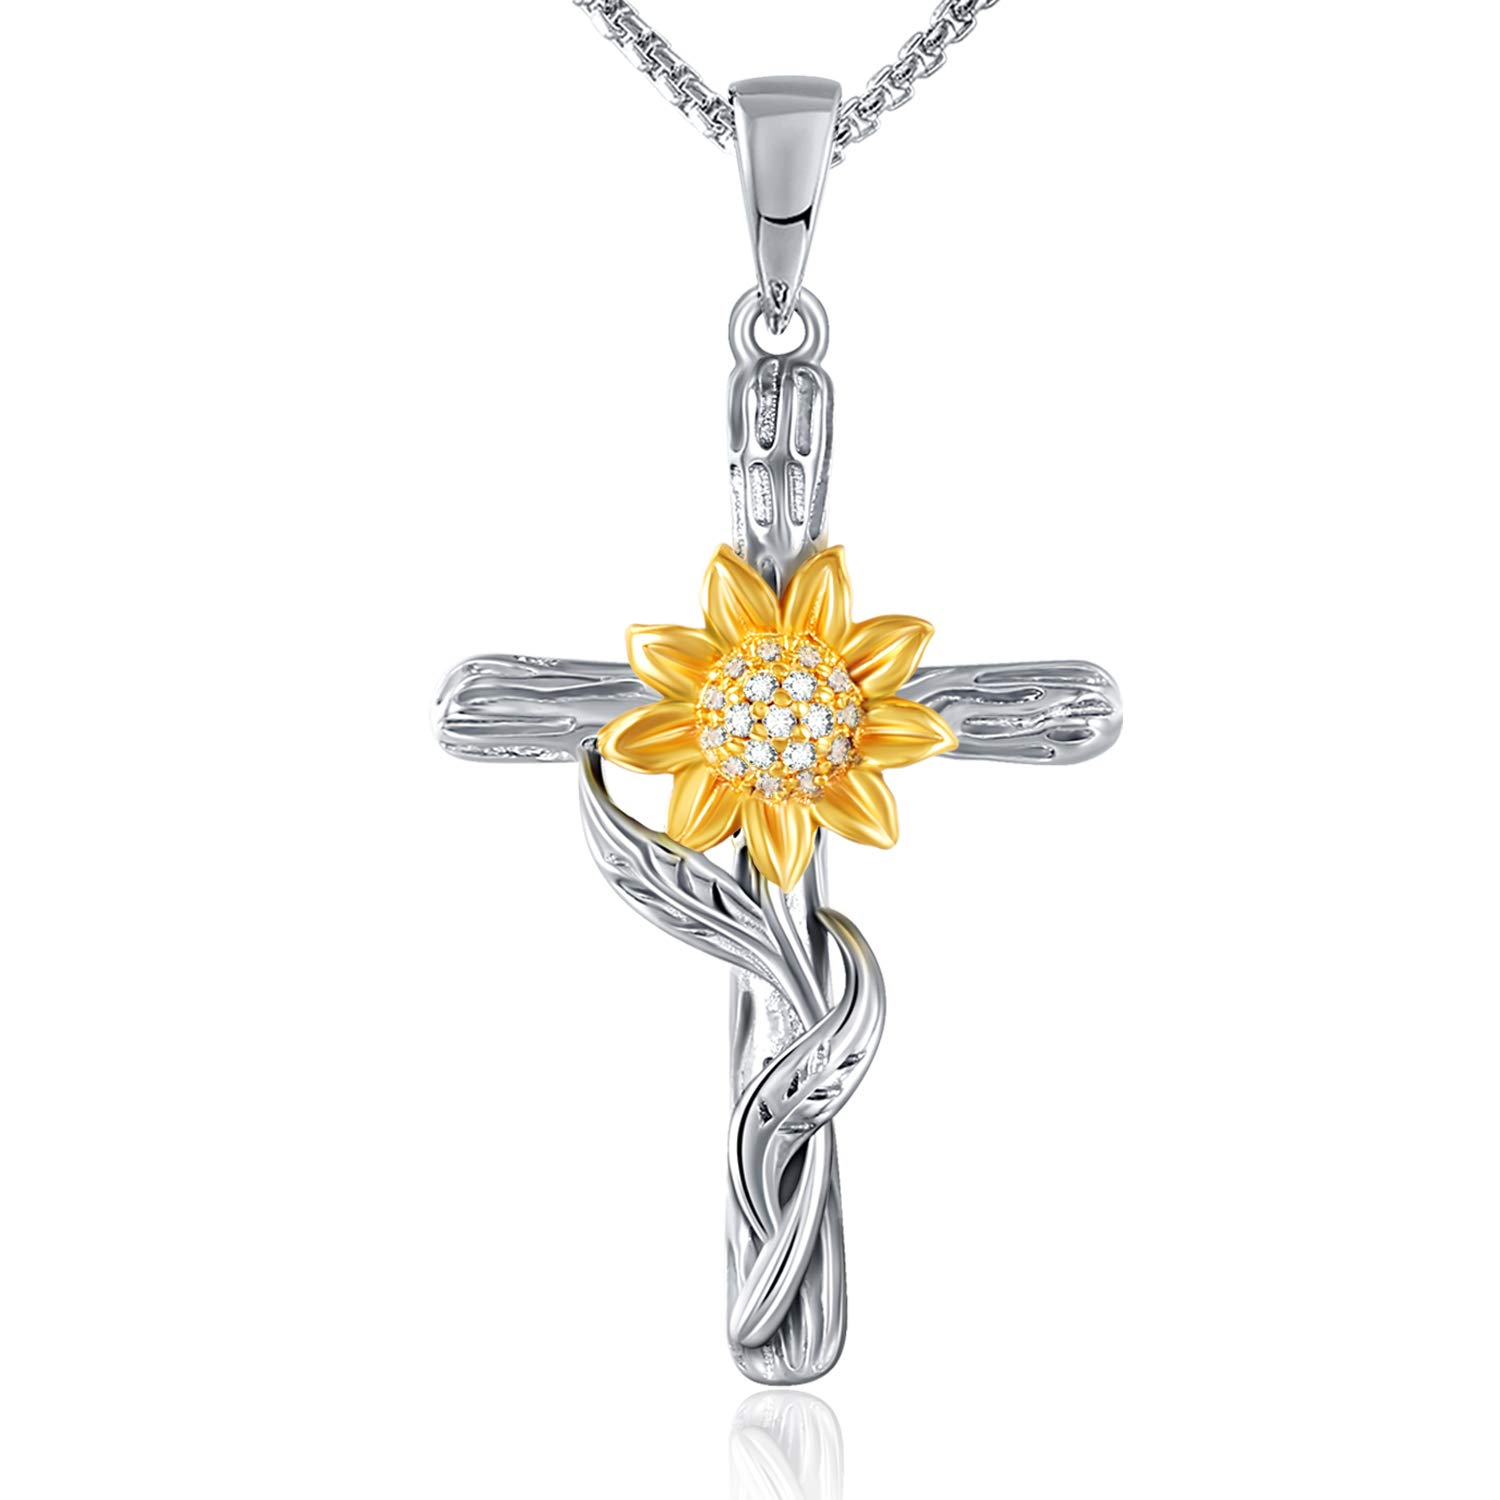 SNZM Sunflower Necklace for Women Girlfriend You are My Sunshine Jewelry Gifts for Christmas Birthday